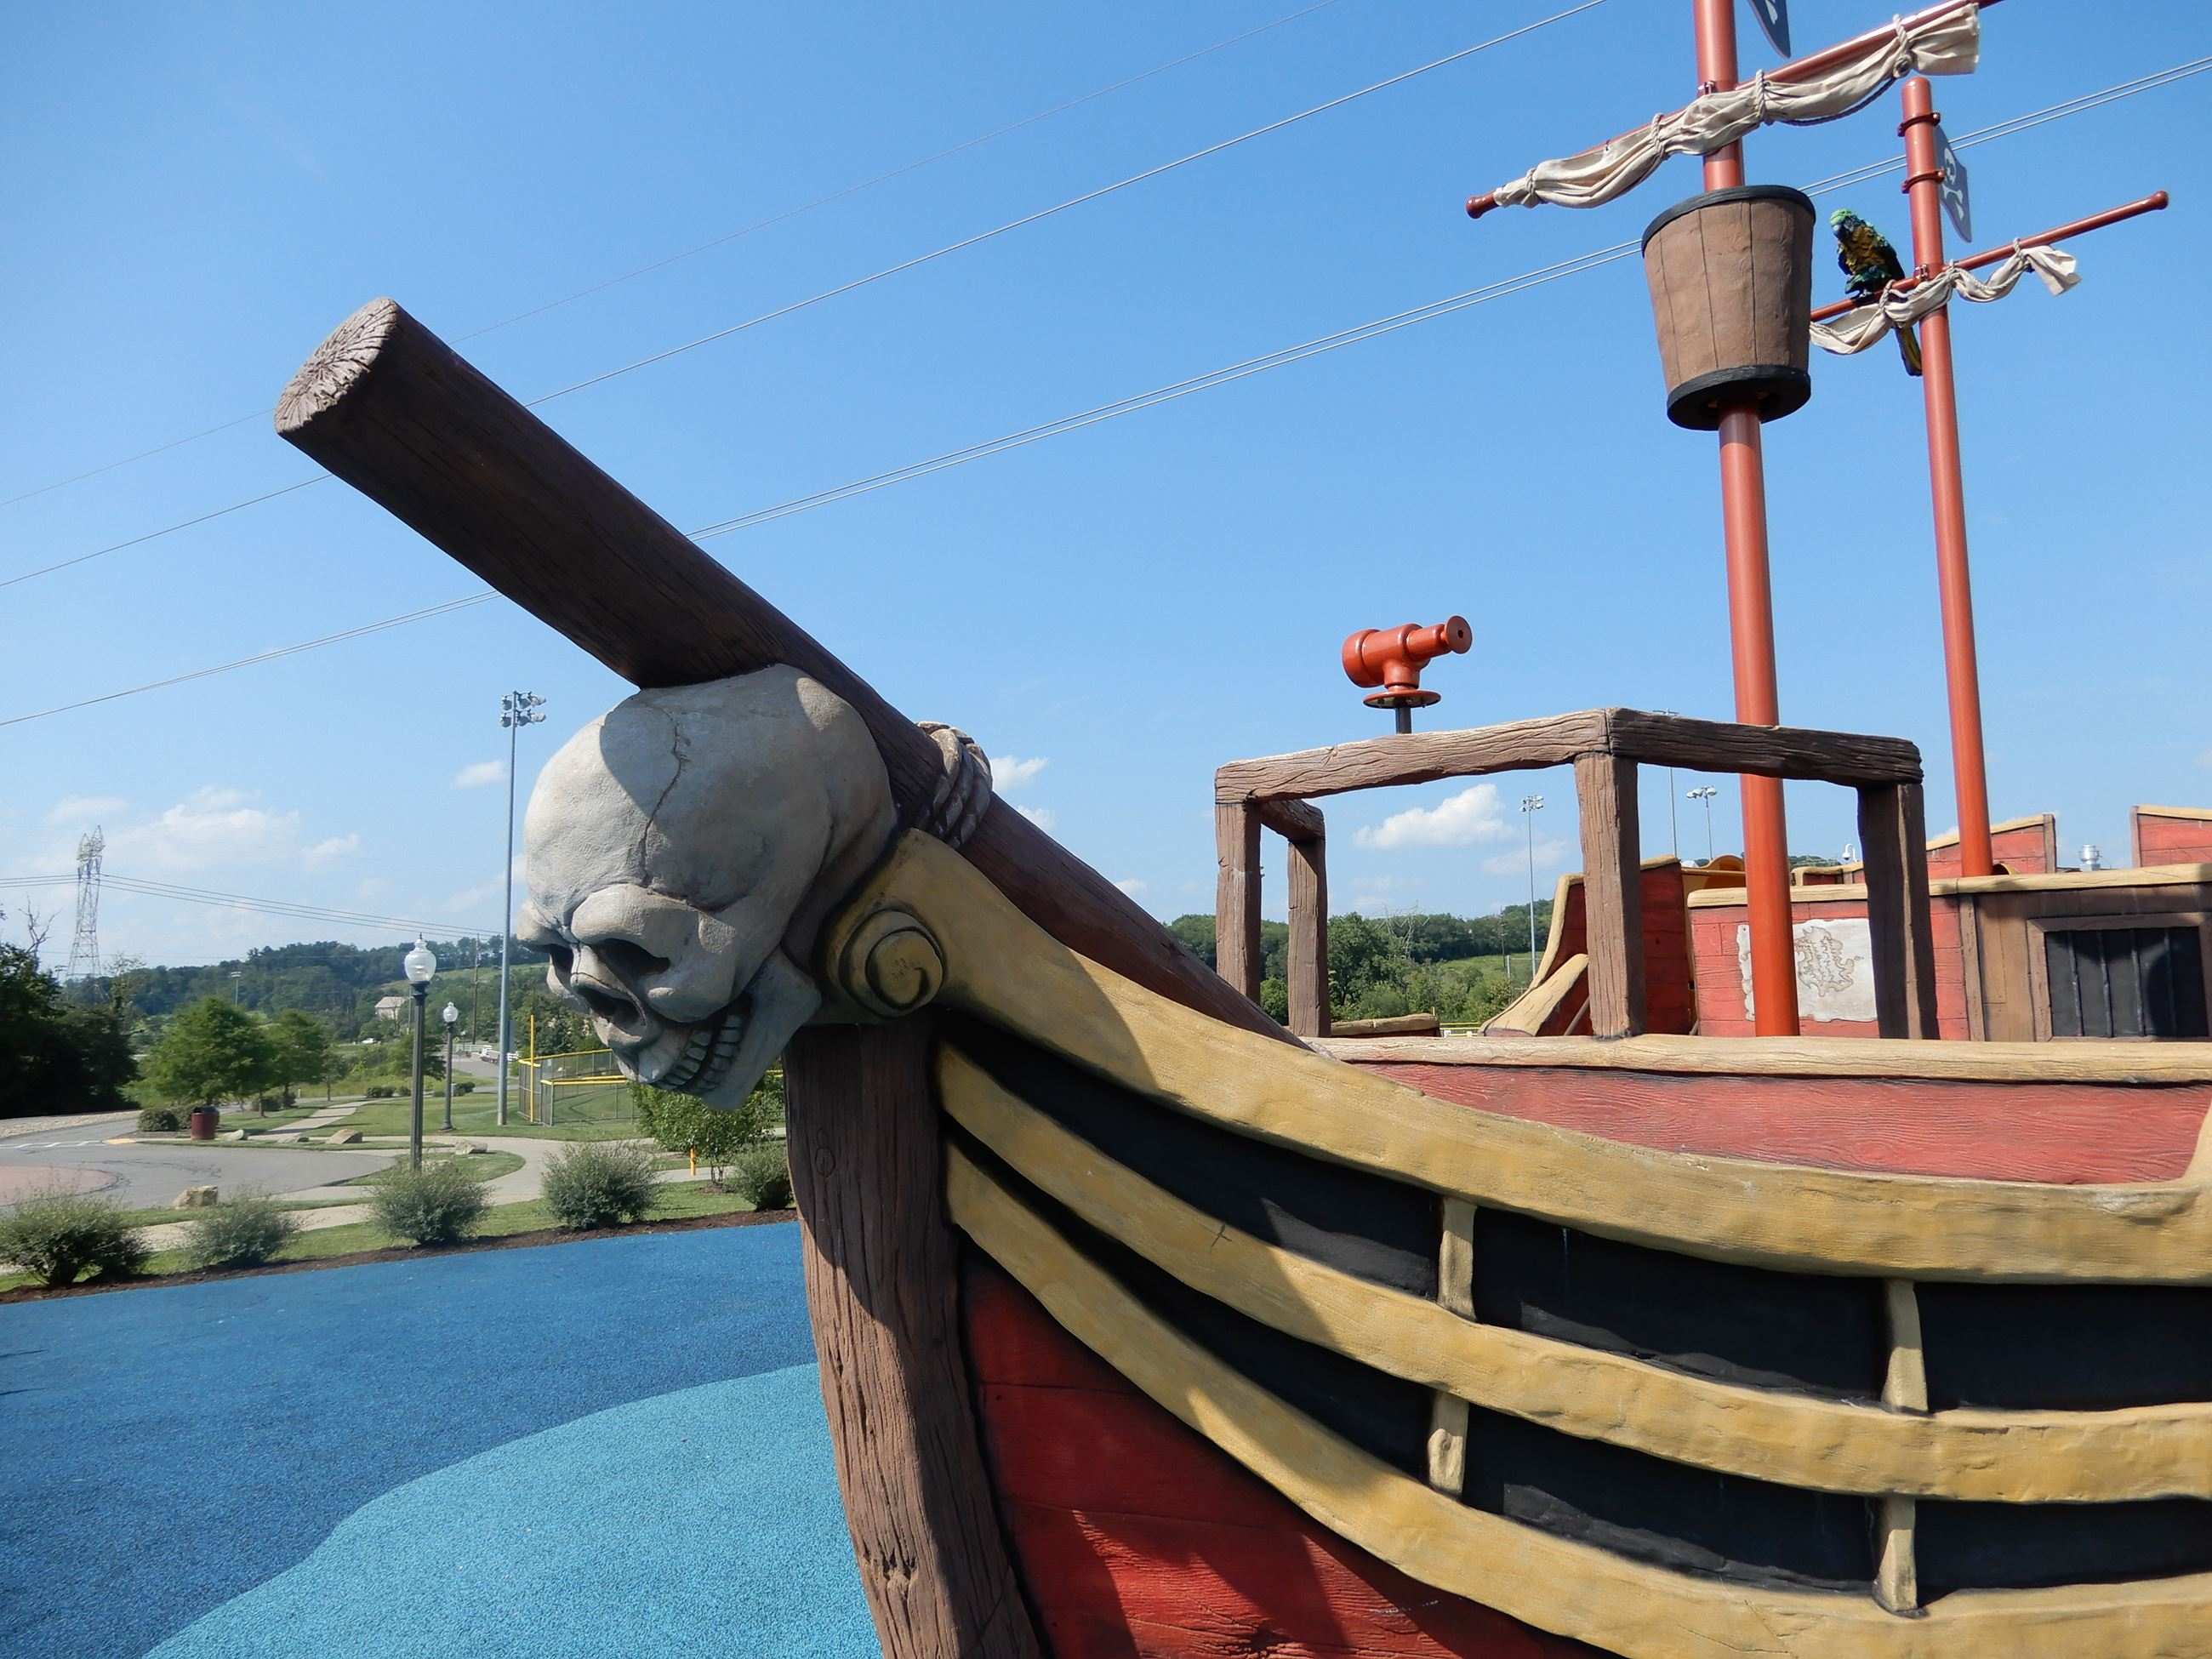 Pirate ship playground